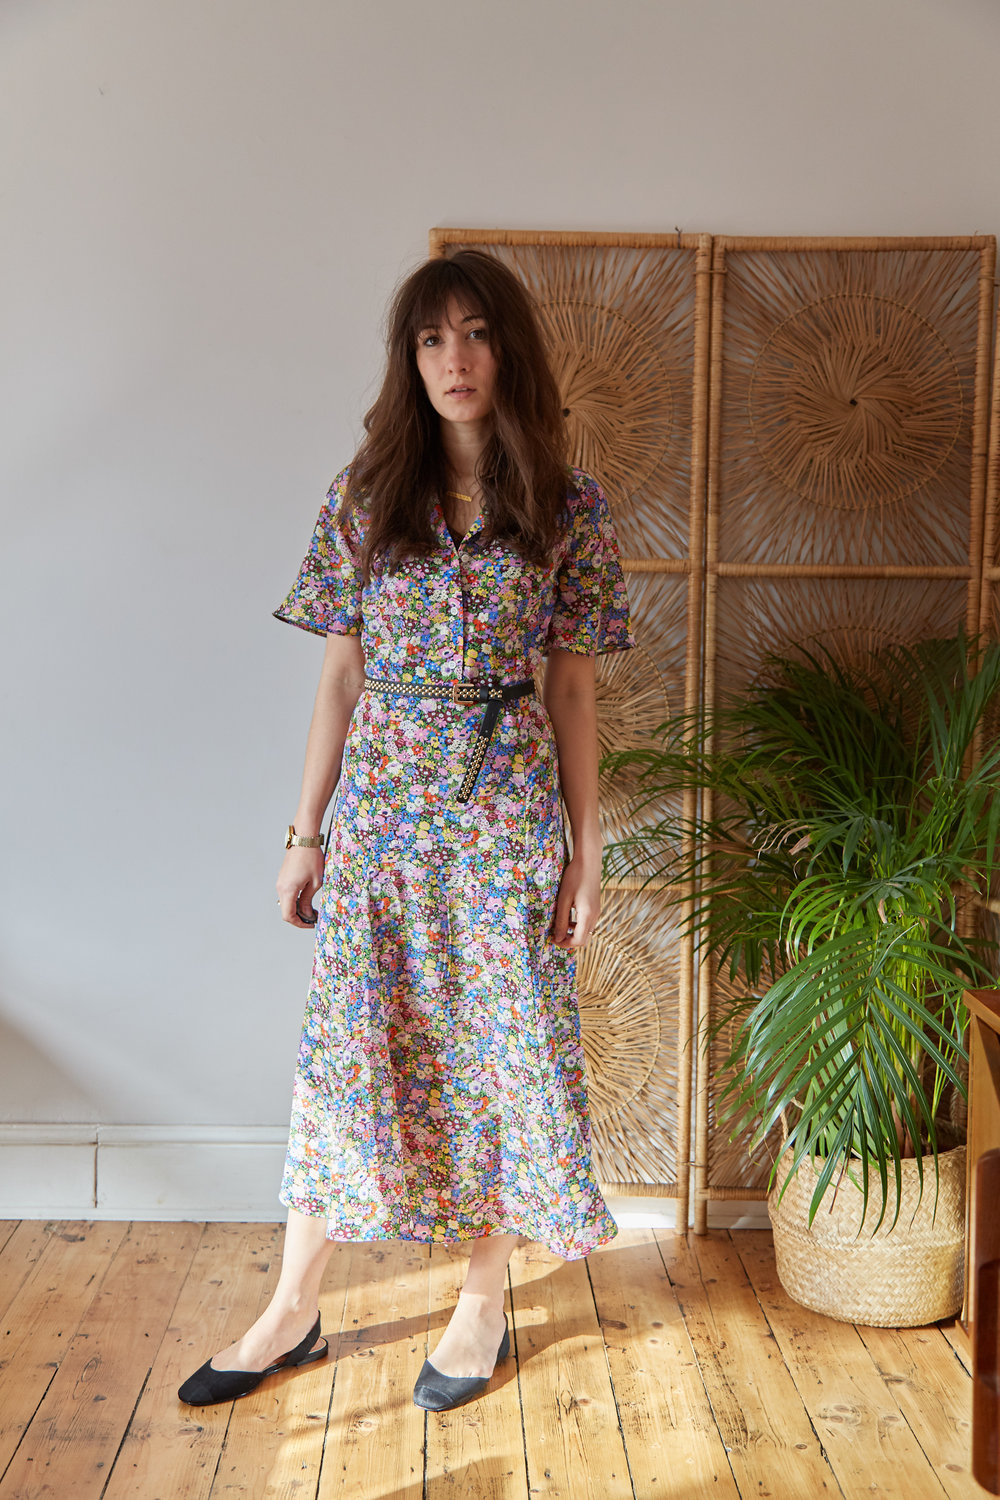 Rosie butcher summer dress edit 8.jpg